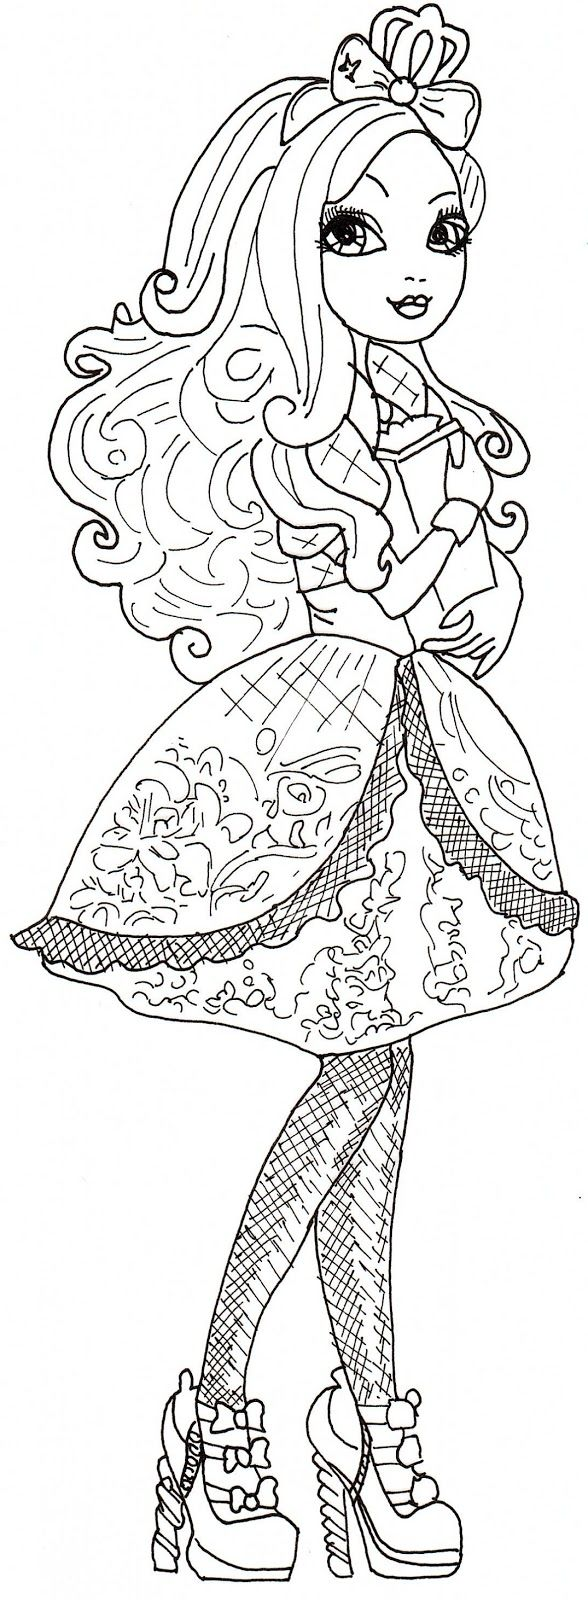 Free coloring pages ever after high - Find This Pin And More On Ever After High Apple White Free Printable Ever After High Coloring Pages